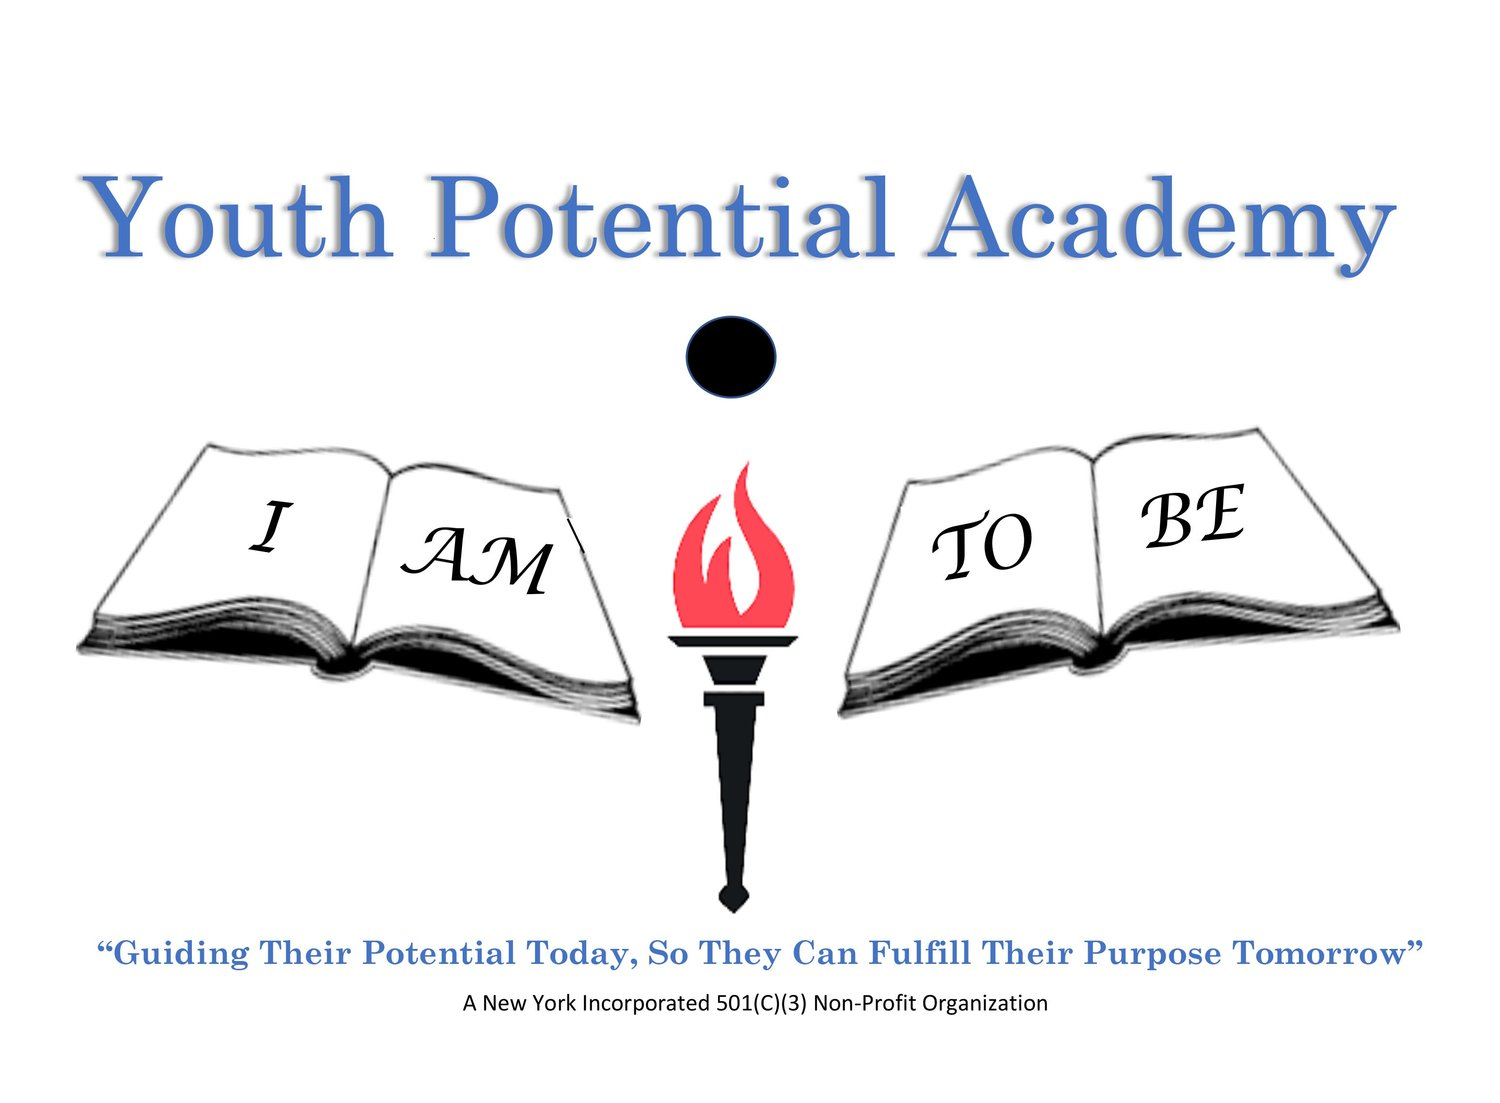 YOUTH POTENTIAL